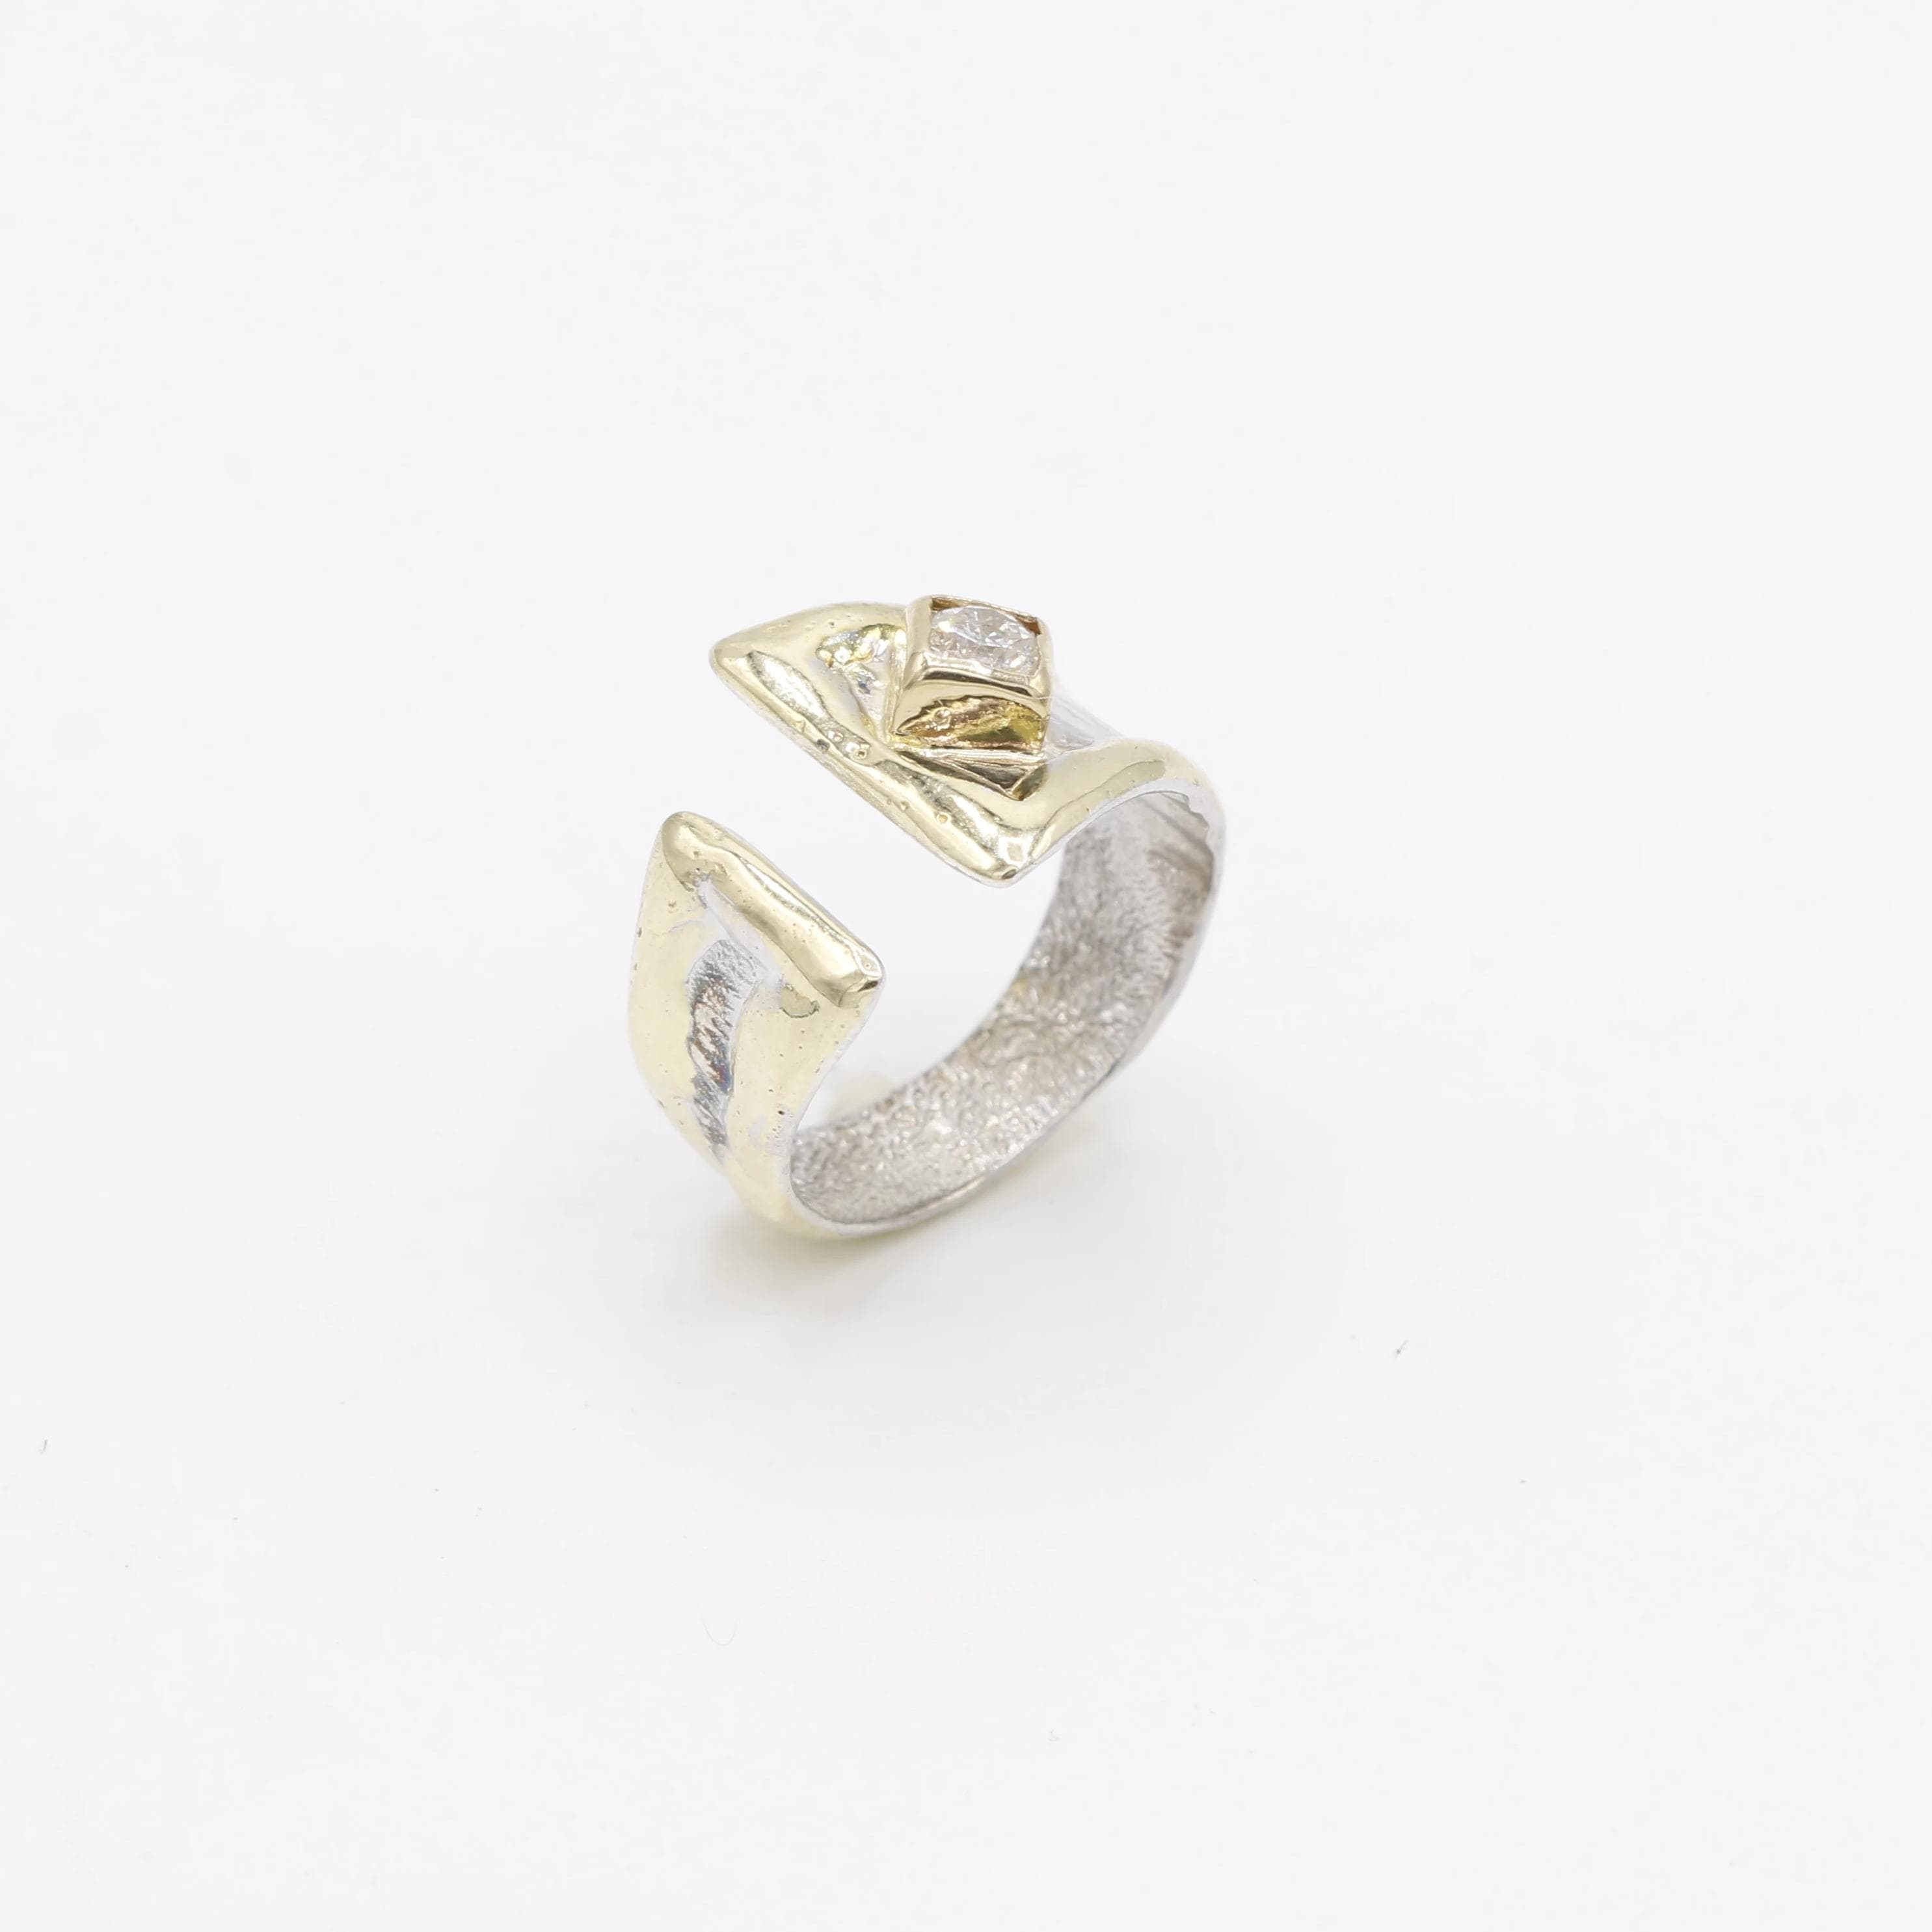 14K Gold & Crystalline Silver Diamond Ring - 30581-Fusion Designs-Renee Taylor Gallery